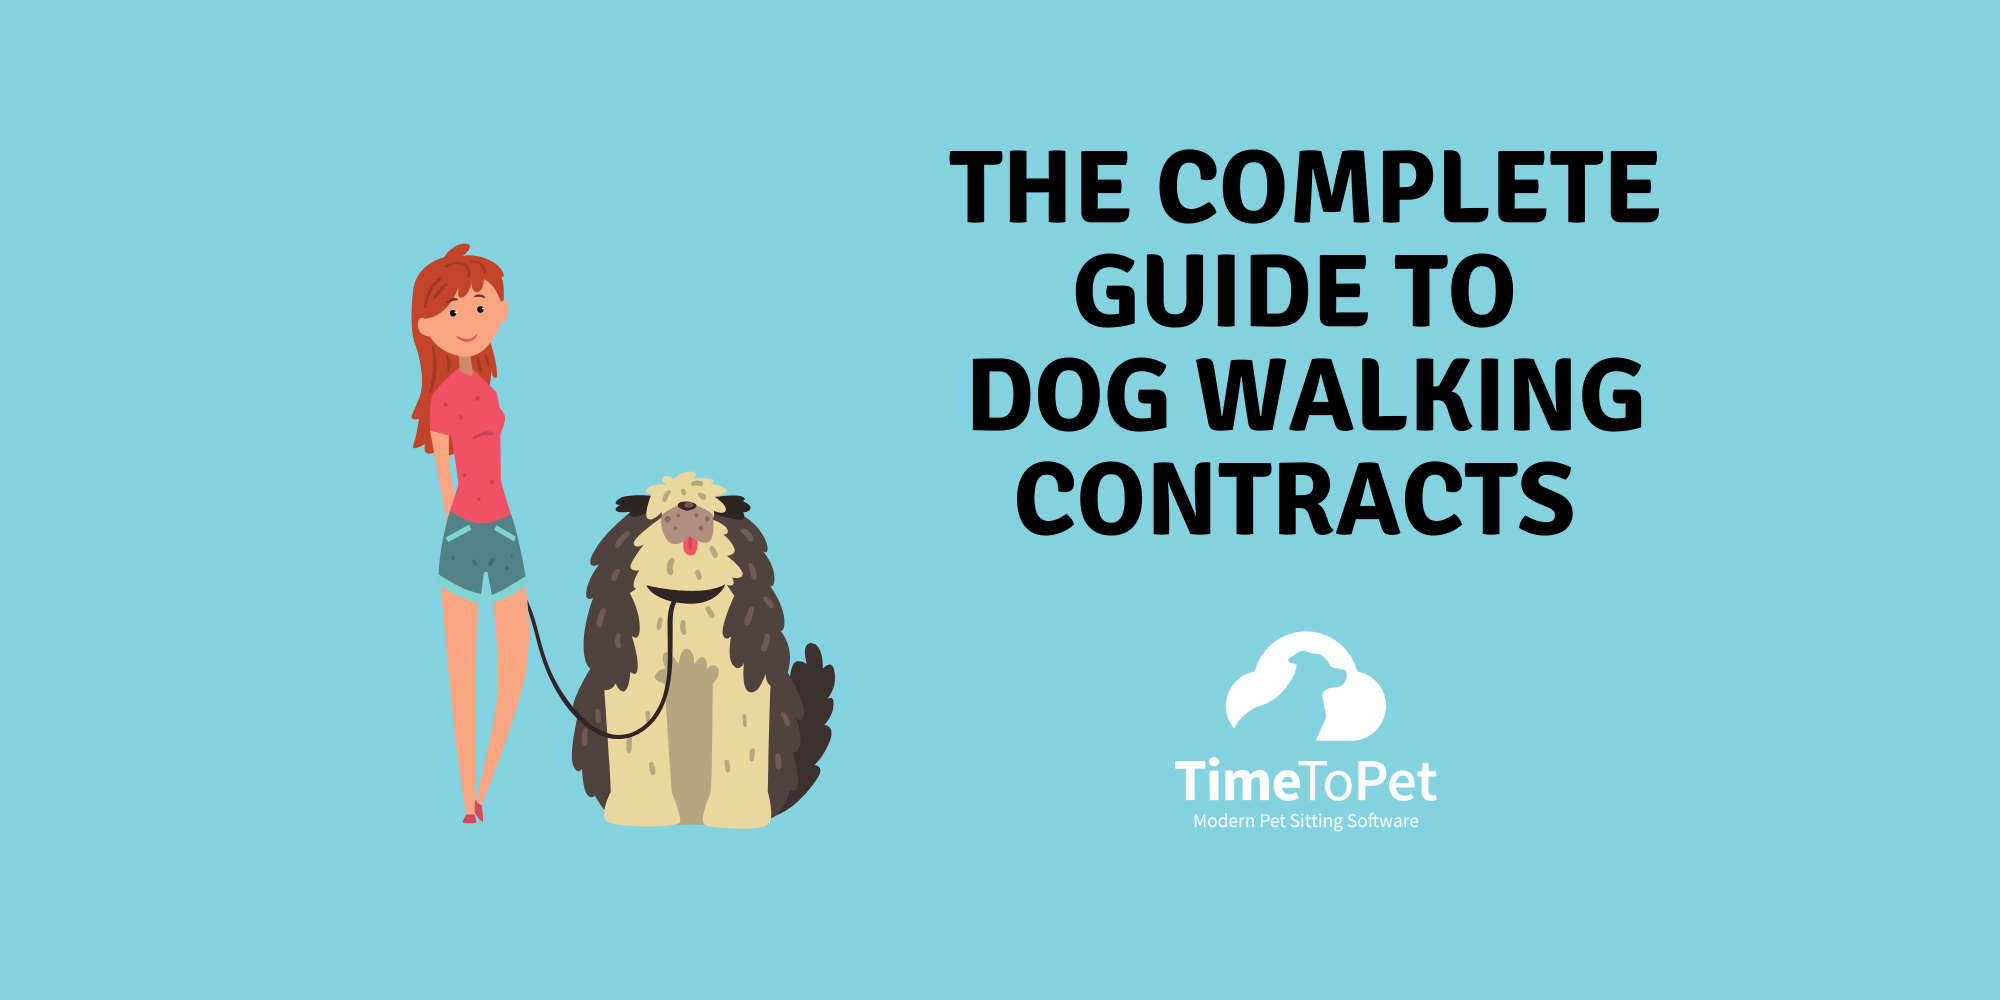 summary image for what to include in dog walking contracts